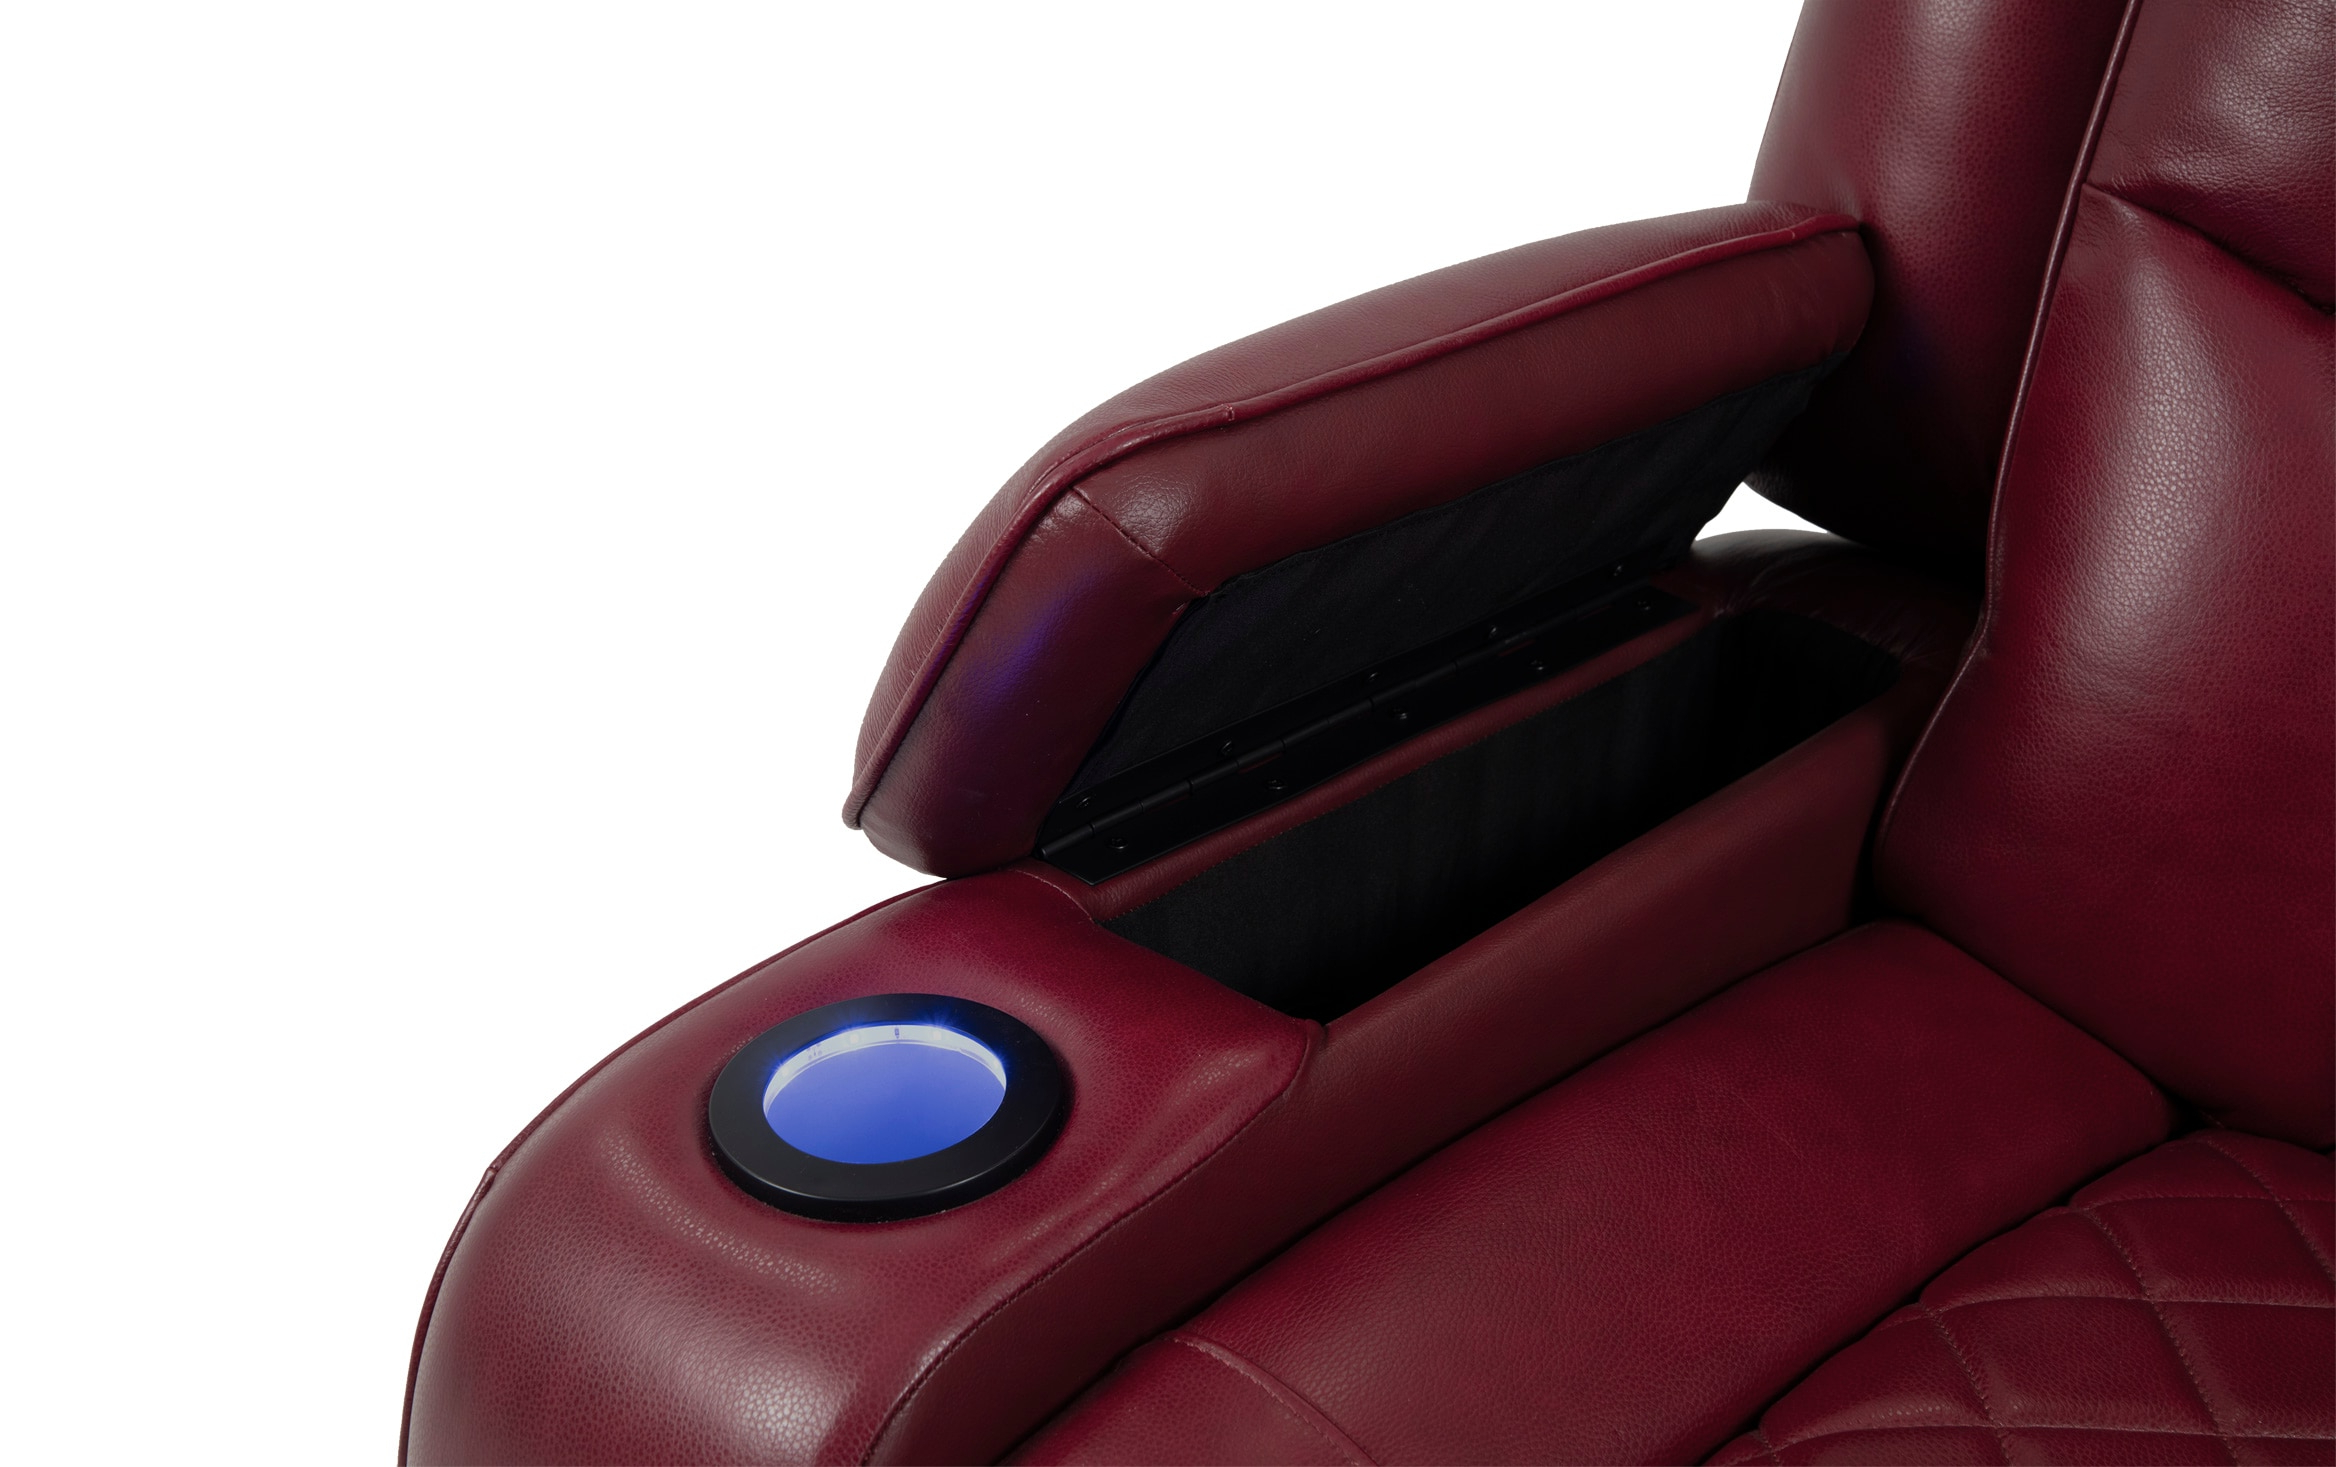 Panther Fire Leather Dual Power Reclining Sofa – Latest In Current Panther Fire Leather Dual Power Reclining Sofas (View 15 of 15)